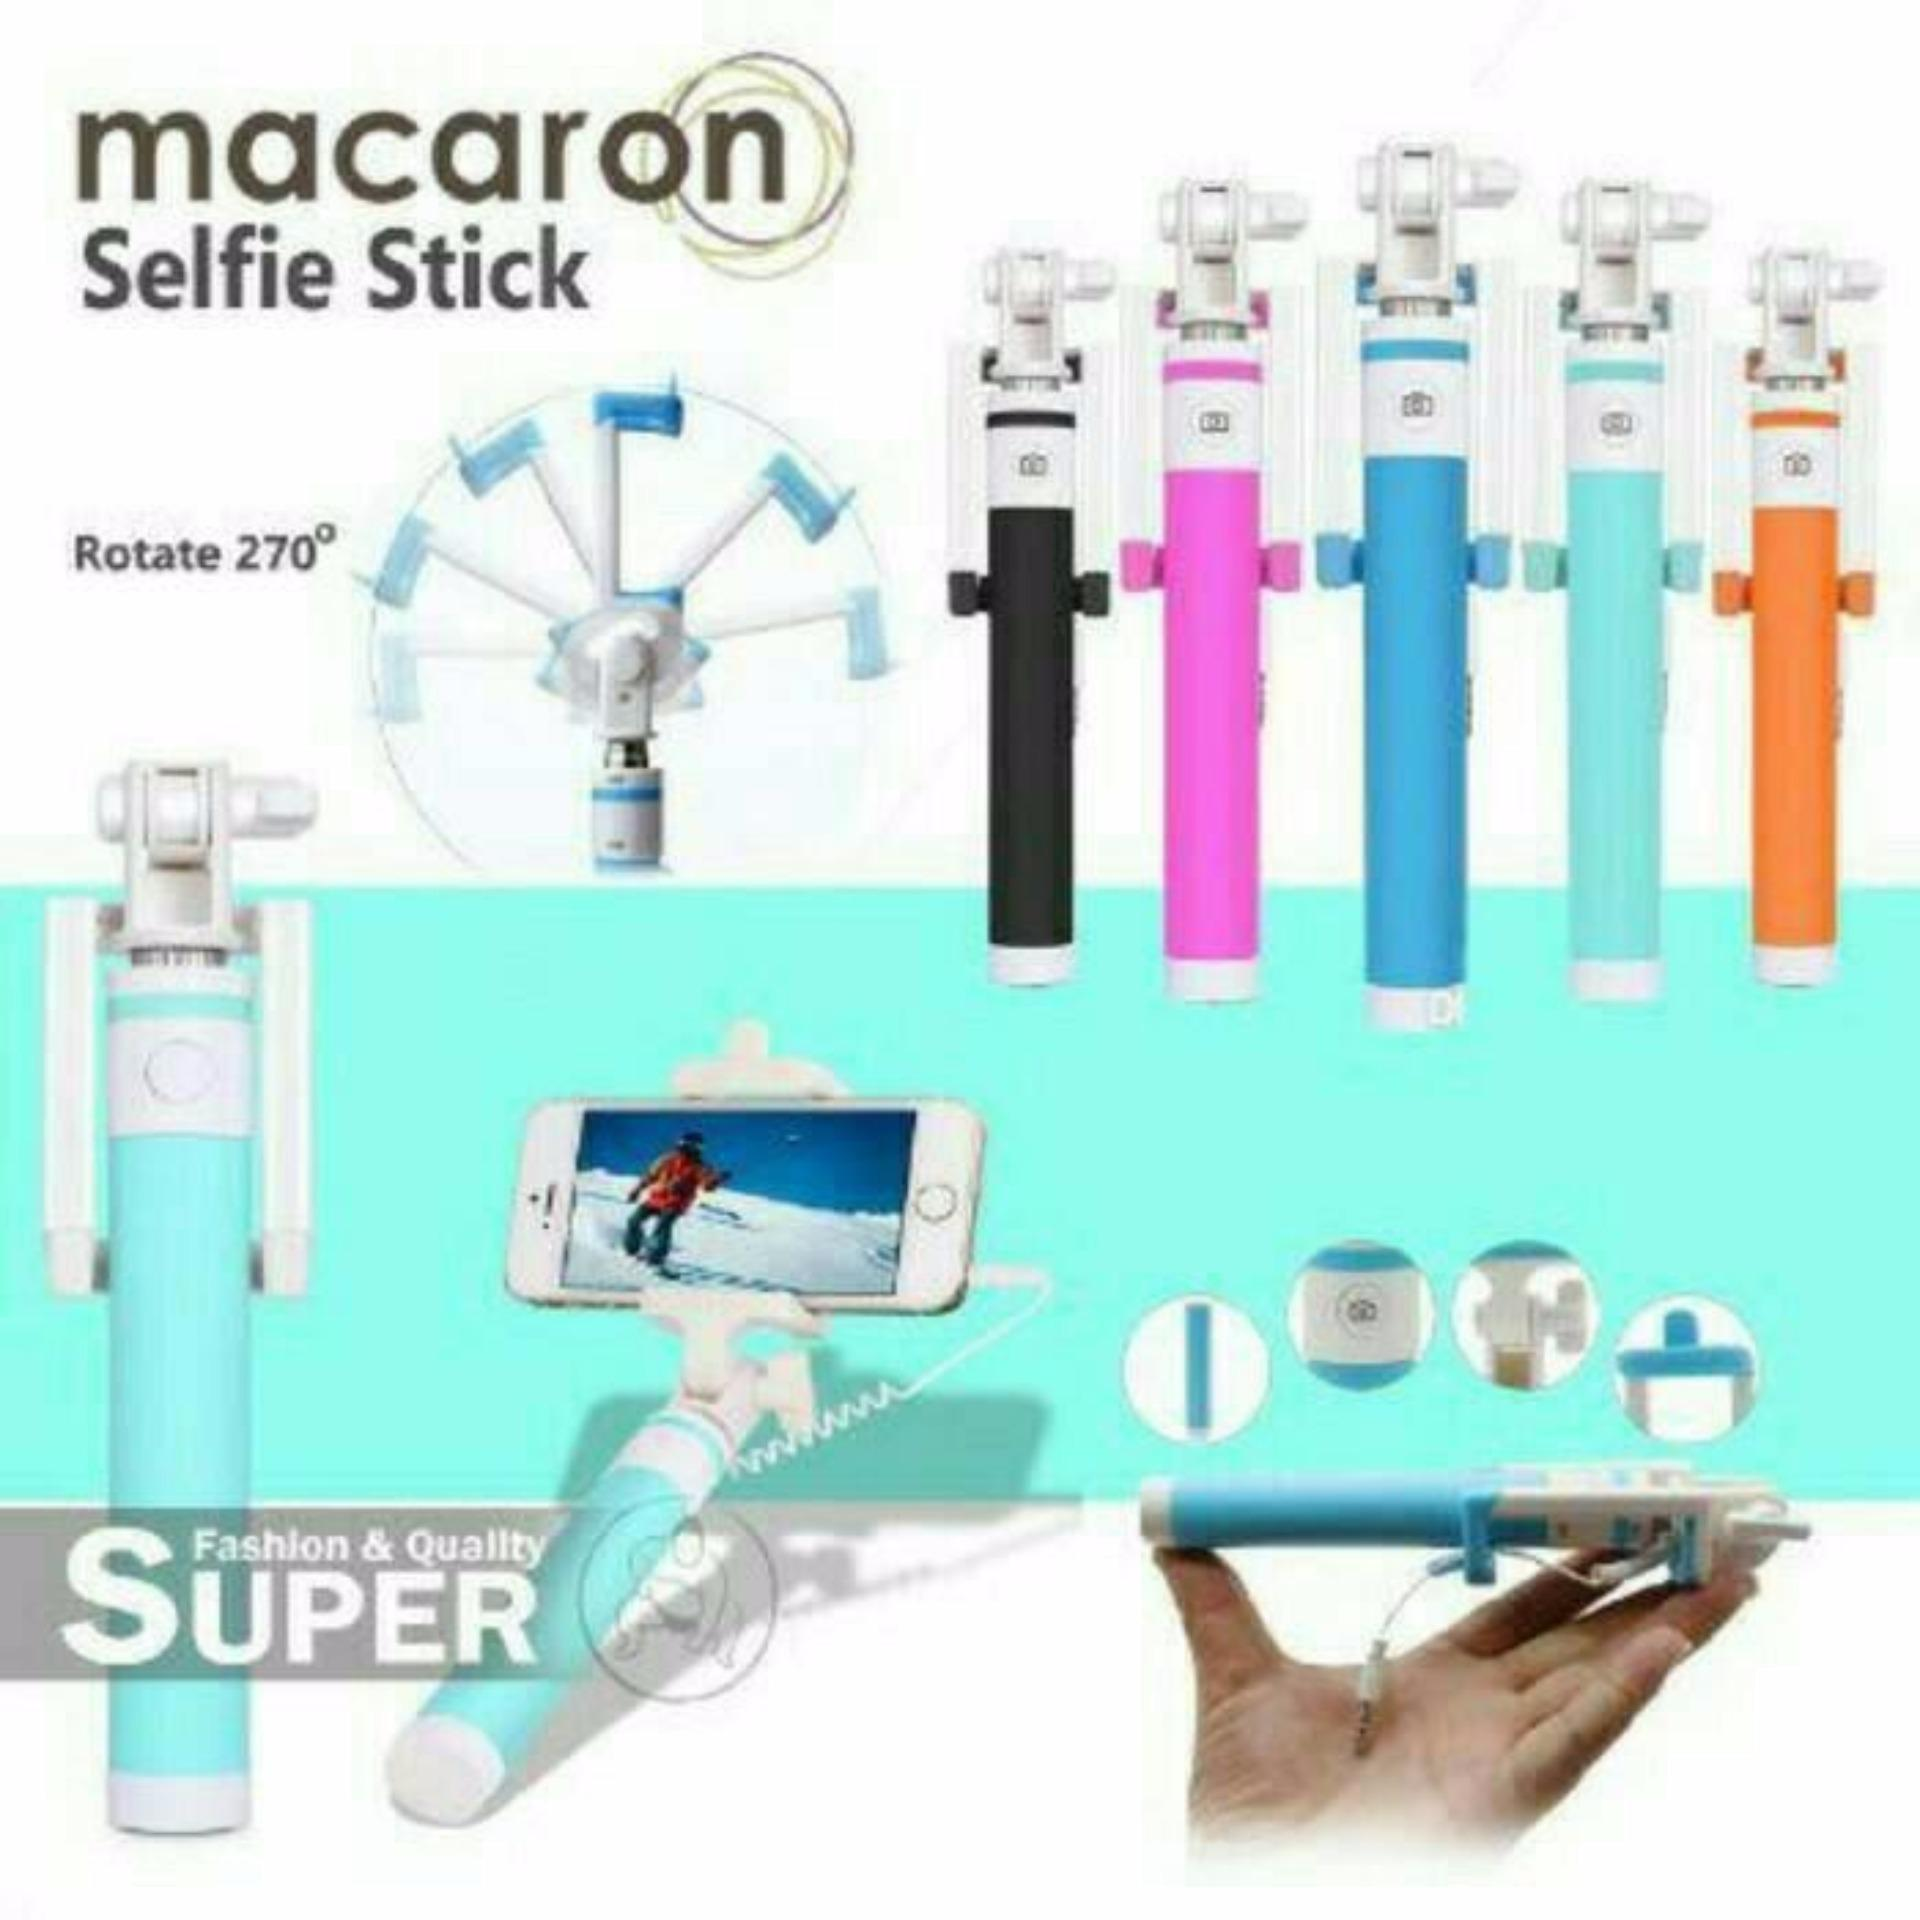 Monopod Paket Hemat 4in1 Tongsis Lensa Superwide Fisheye 3in1 Minnion 3in Powerbank Authentic Selfie Stick High Quality Macaron Lipat Kabeltombol Wired For